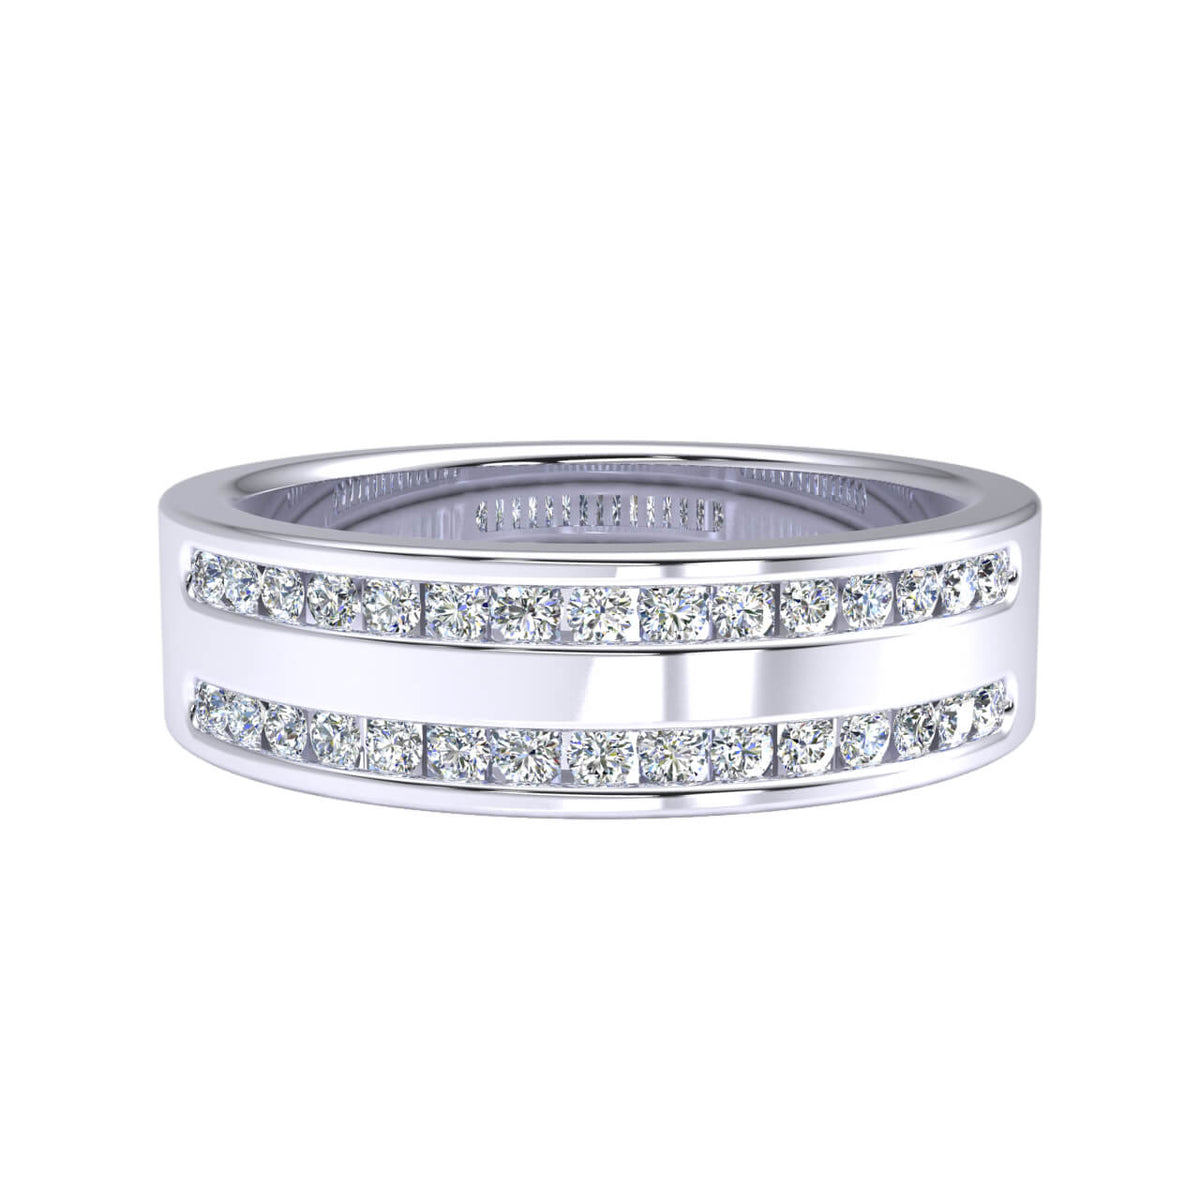 0.45 Ct Round GH SI1 Diamond 2 Row Fancy Wedding Band For Men 10k Gold